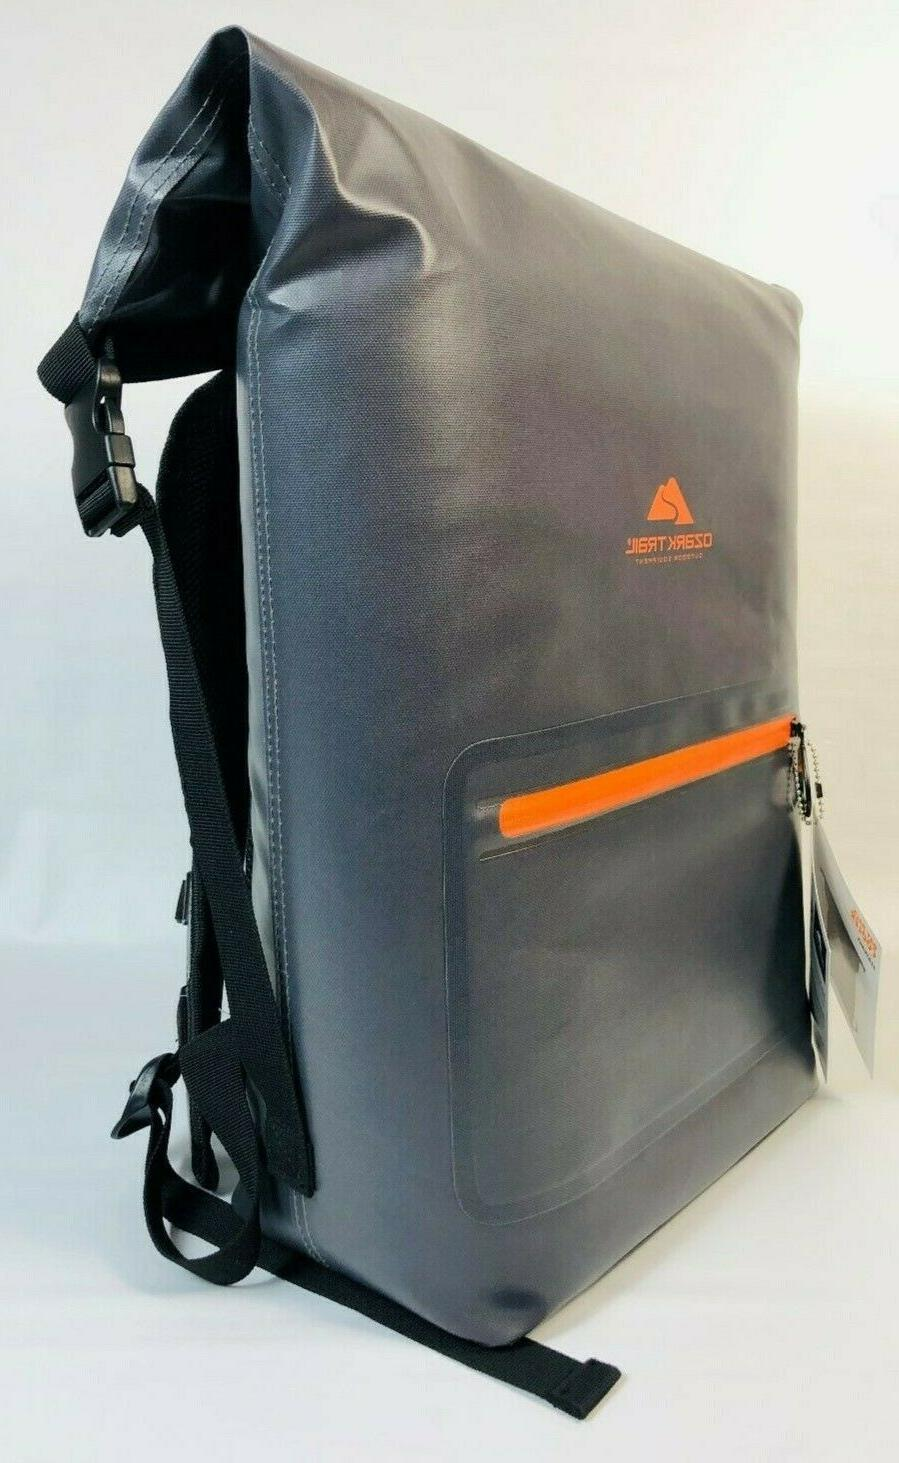 BACKPACK COOLER by Ozark Trail + Ice straps NEW FREE